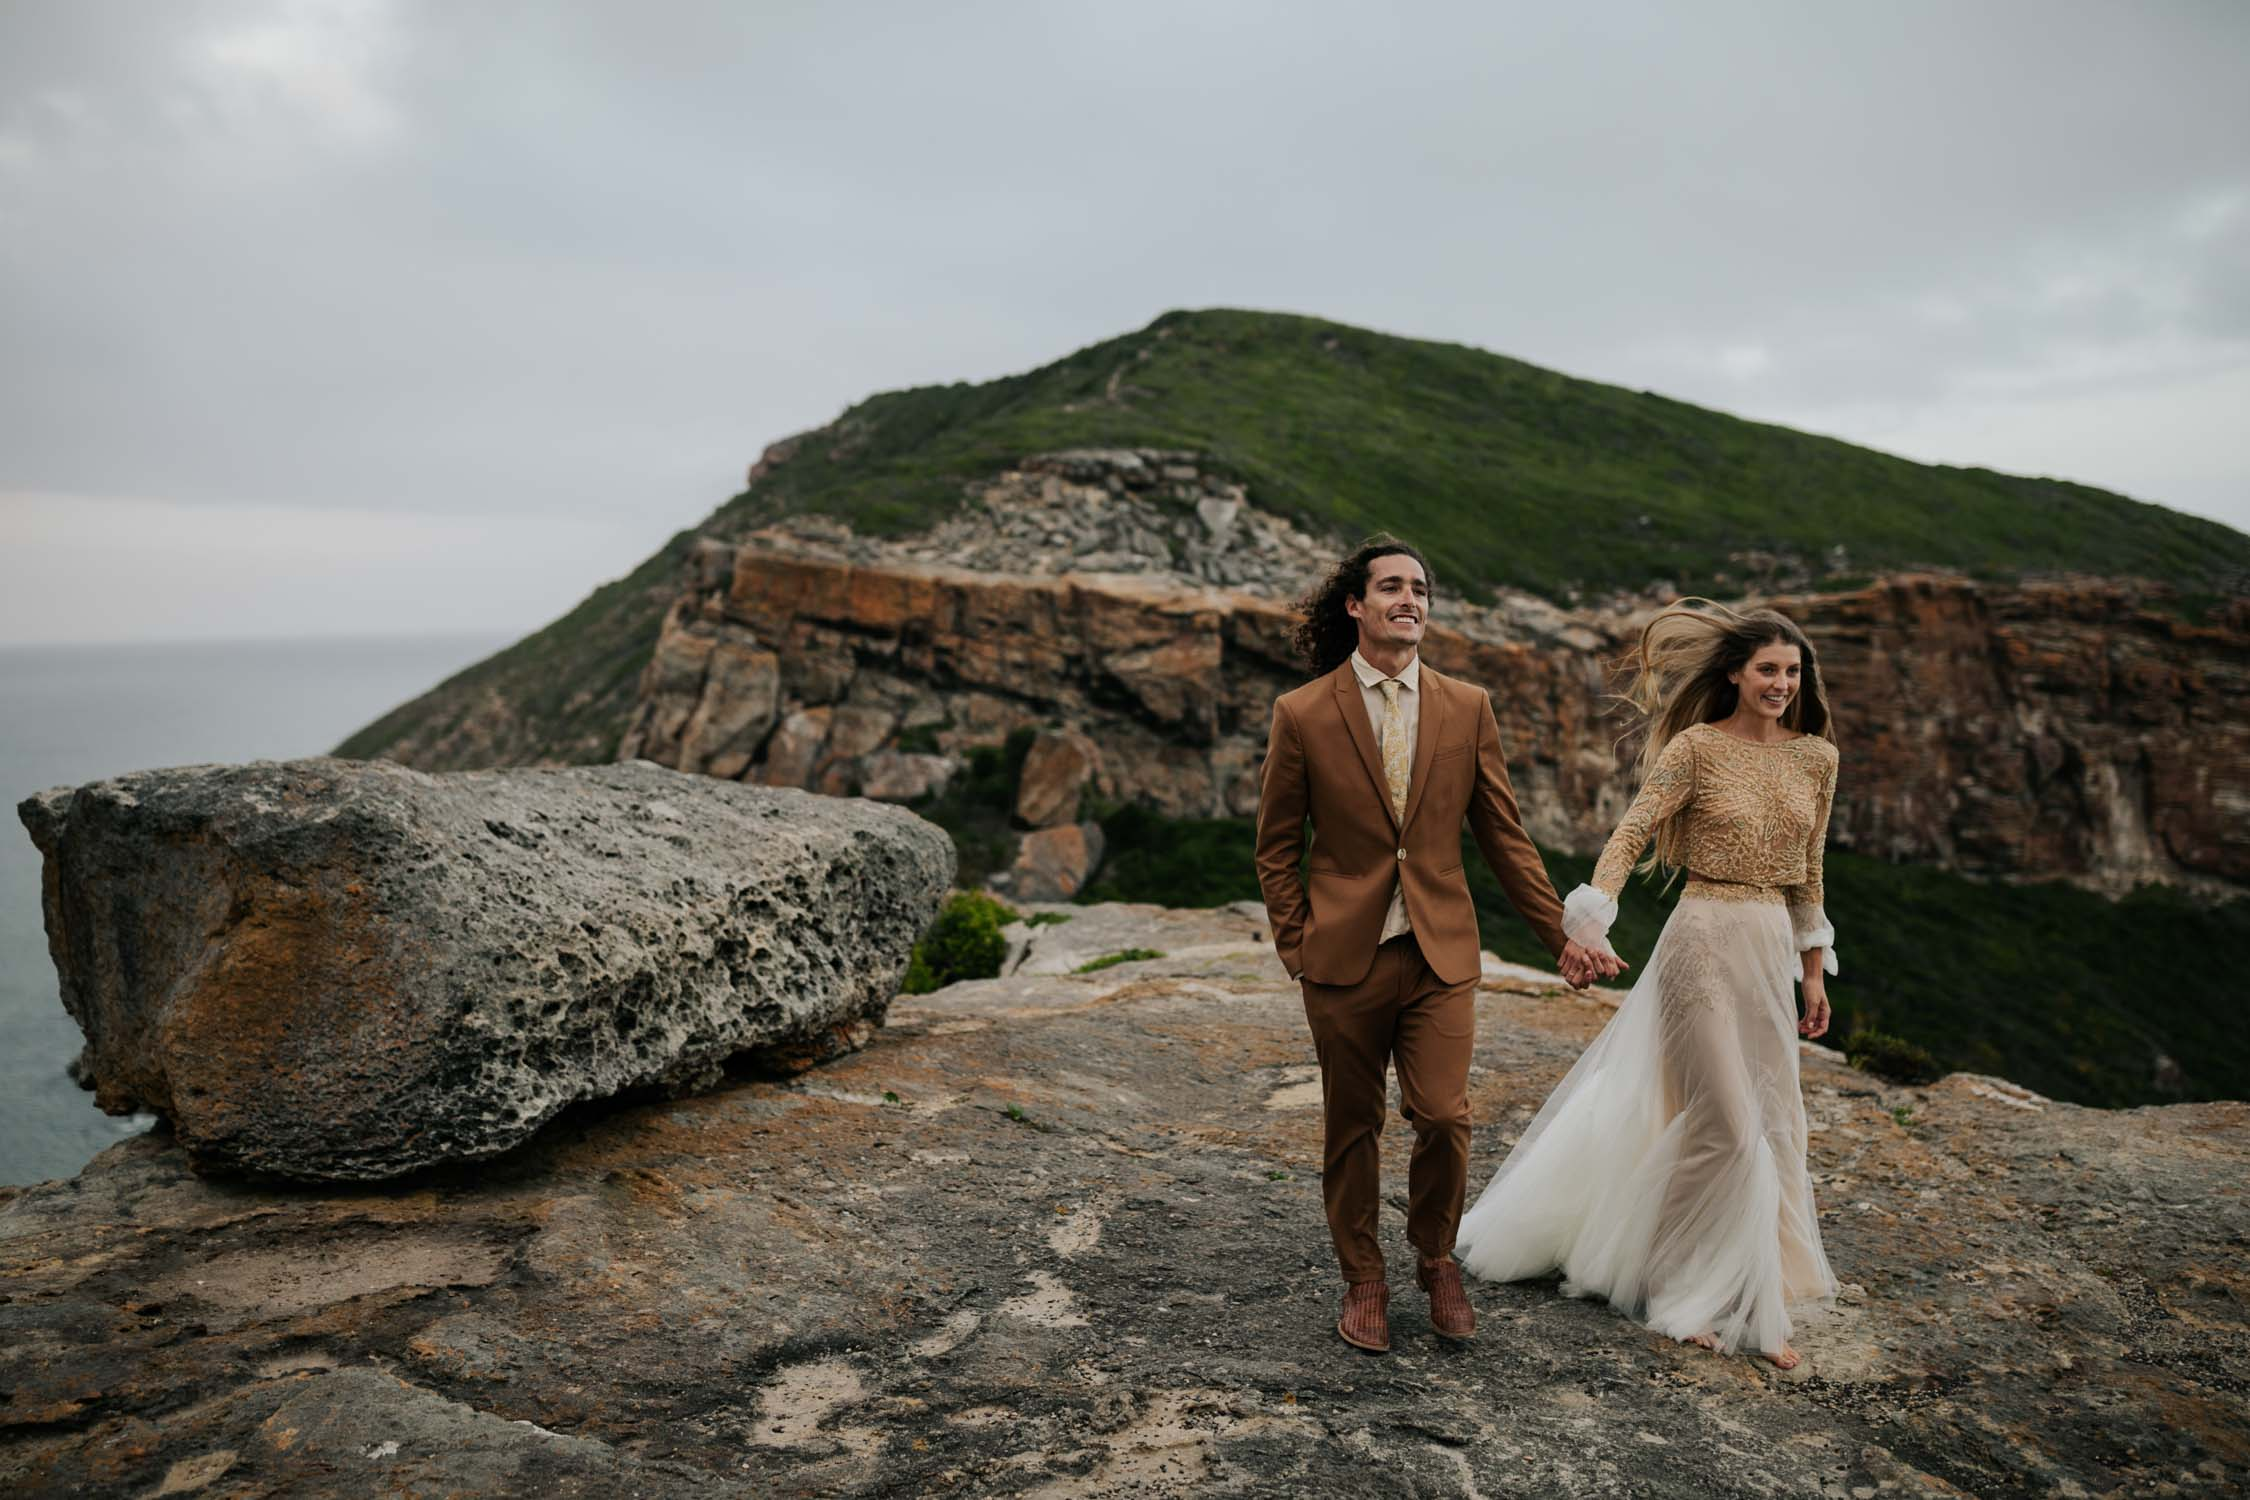 Photo by Vancouver Photographer of groom wearing brown suite, beige shirt, and felt hat walks with bride wearing gypsy wedding dress with flared long sleeves, sheer skirt and gold detailed top on top of cliff